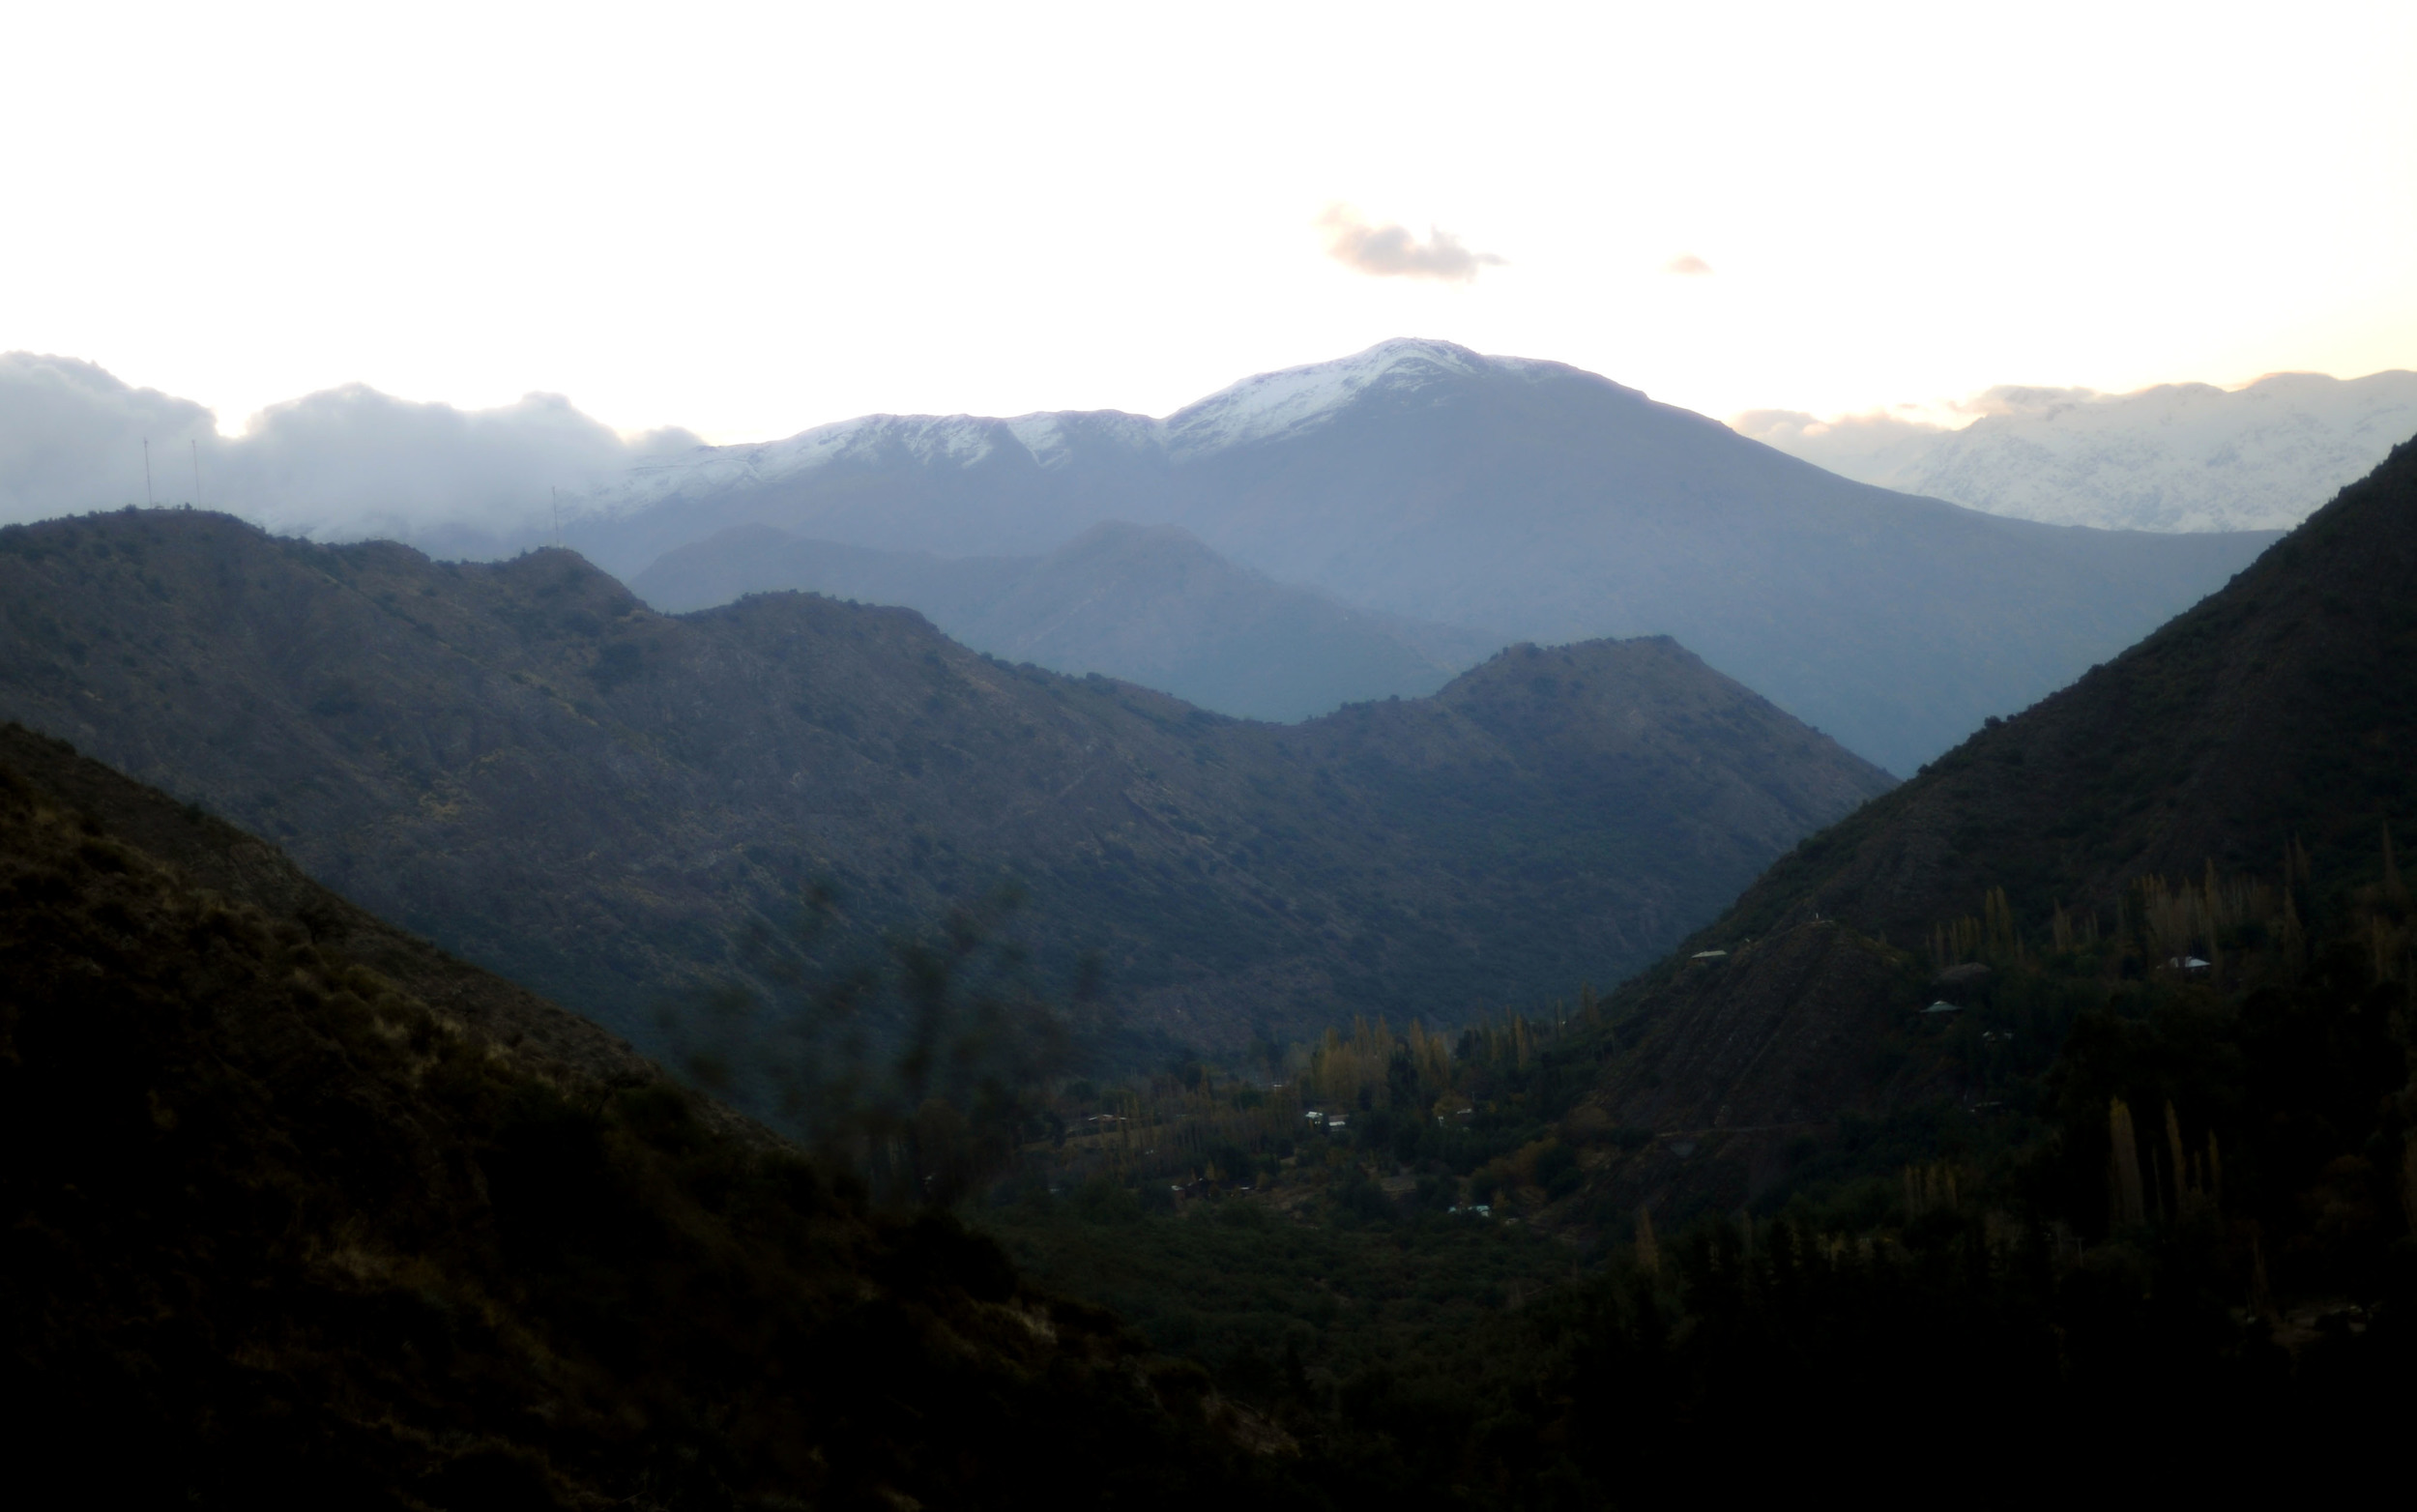 Across the Andes Mountains